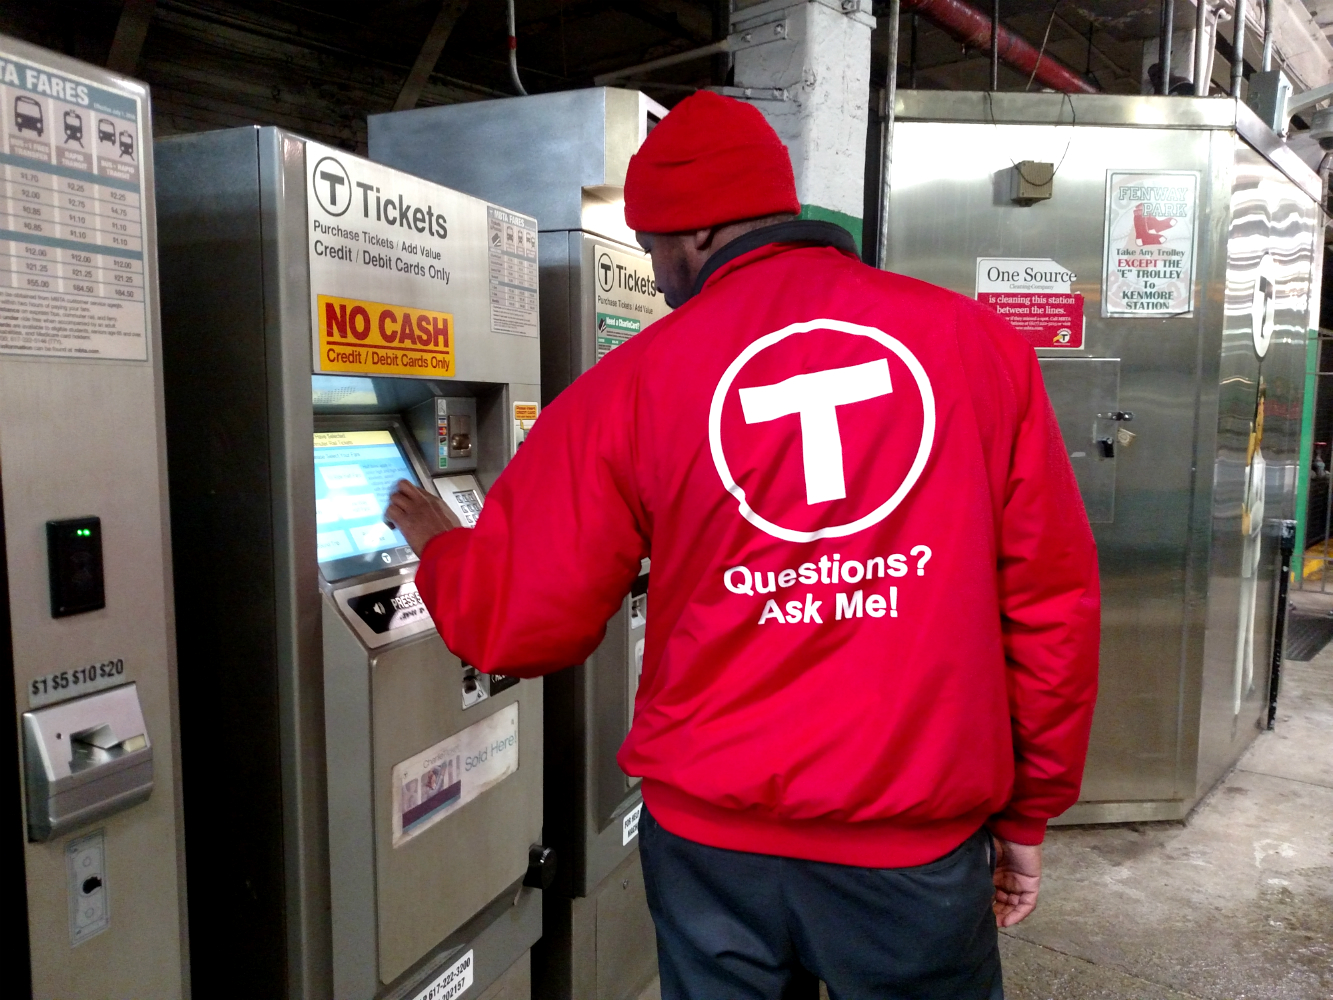 Transit Ambassador in a red jacket with 'Questions? Ask Me!' printed in white on the back. His back is to the camera, and he is tapping a fare vending machine screen.